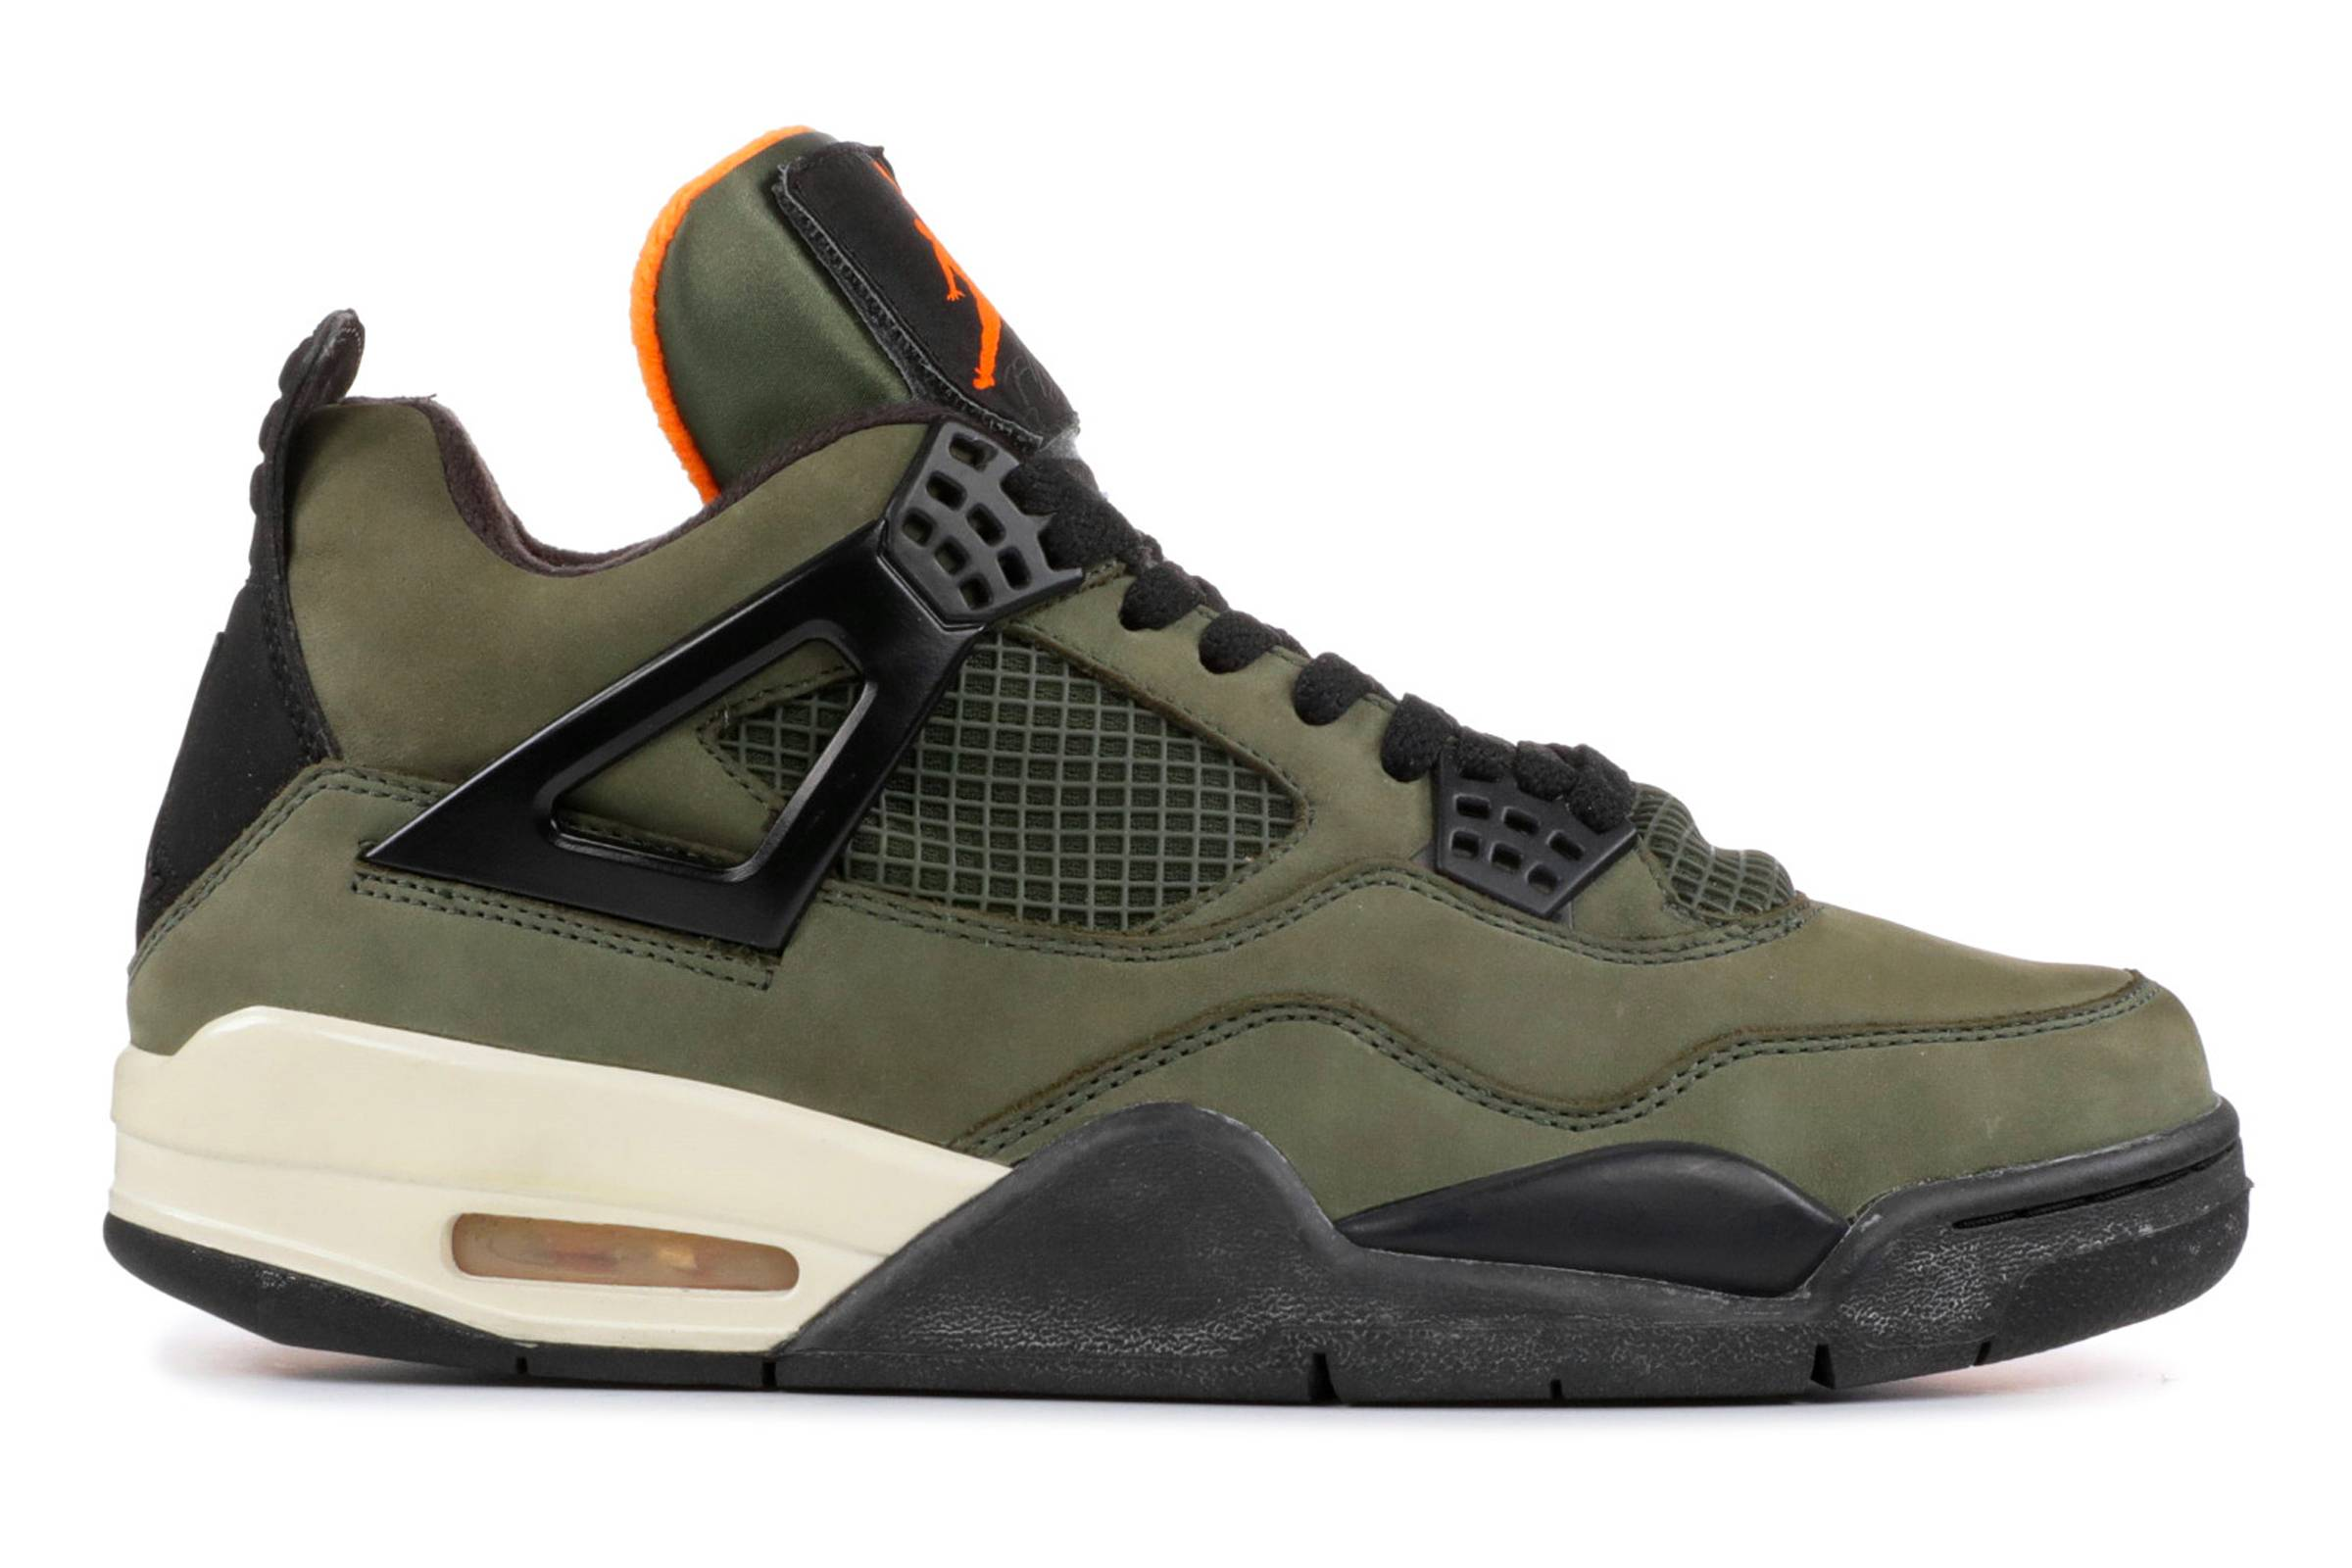 b1736341f64d01 Buggin  Out  Iconic Air Jordan IV Releases - Best Air Jordan 4 ...